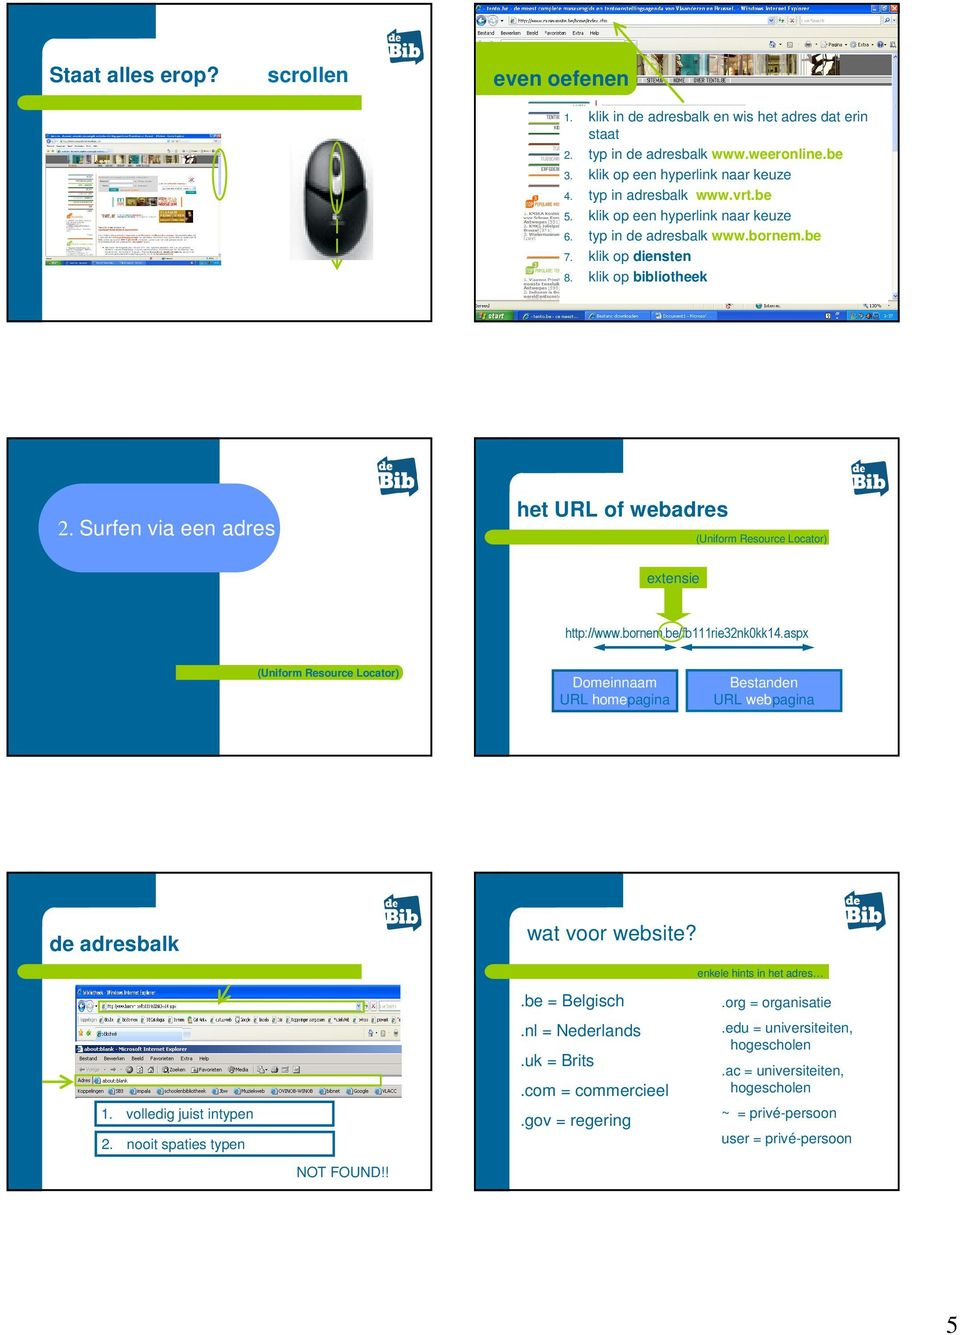 Surfen via een adres of URL het URL of webadres (Uniform Resource Locator) extensie http://www.bornem.be/fb111rie32nk0kk14.